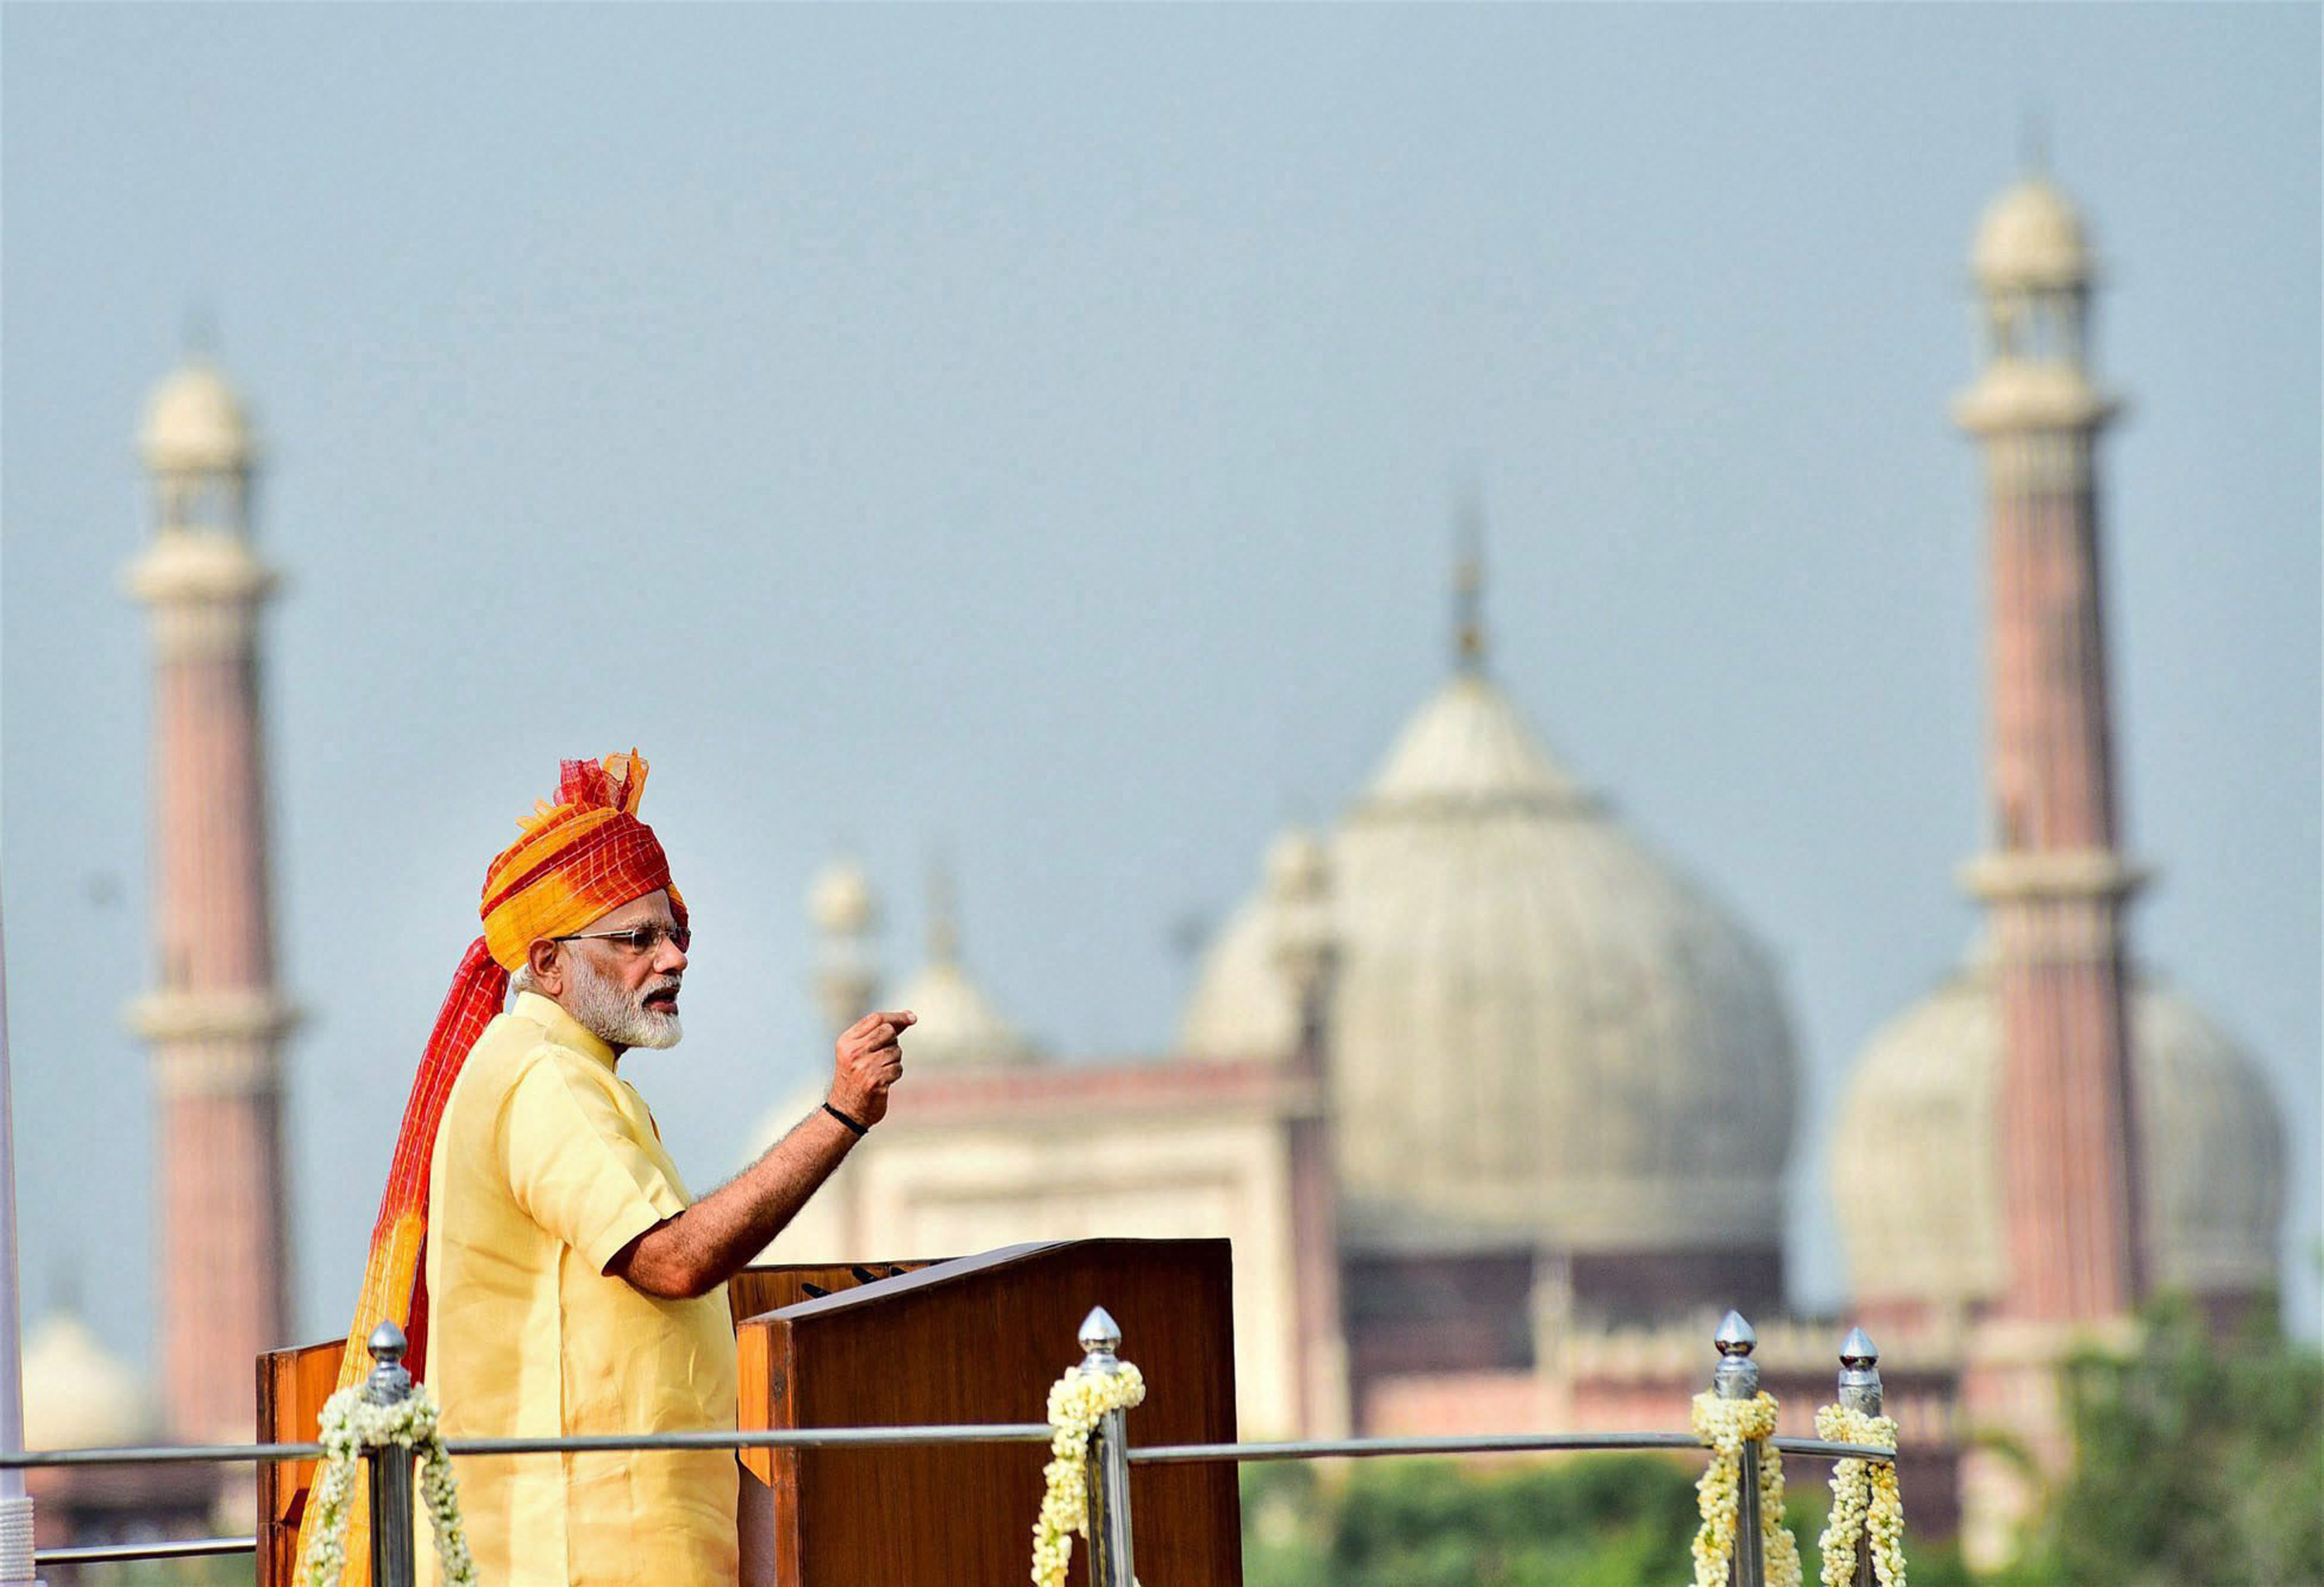 Prime Minister Narendra Modi addressing the nation from the ramparts of the historic Red Fort on the occasion of Independence Day in New Delhi on Tuesday. Credit: PTI/PIB